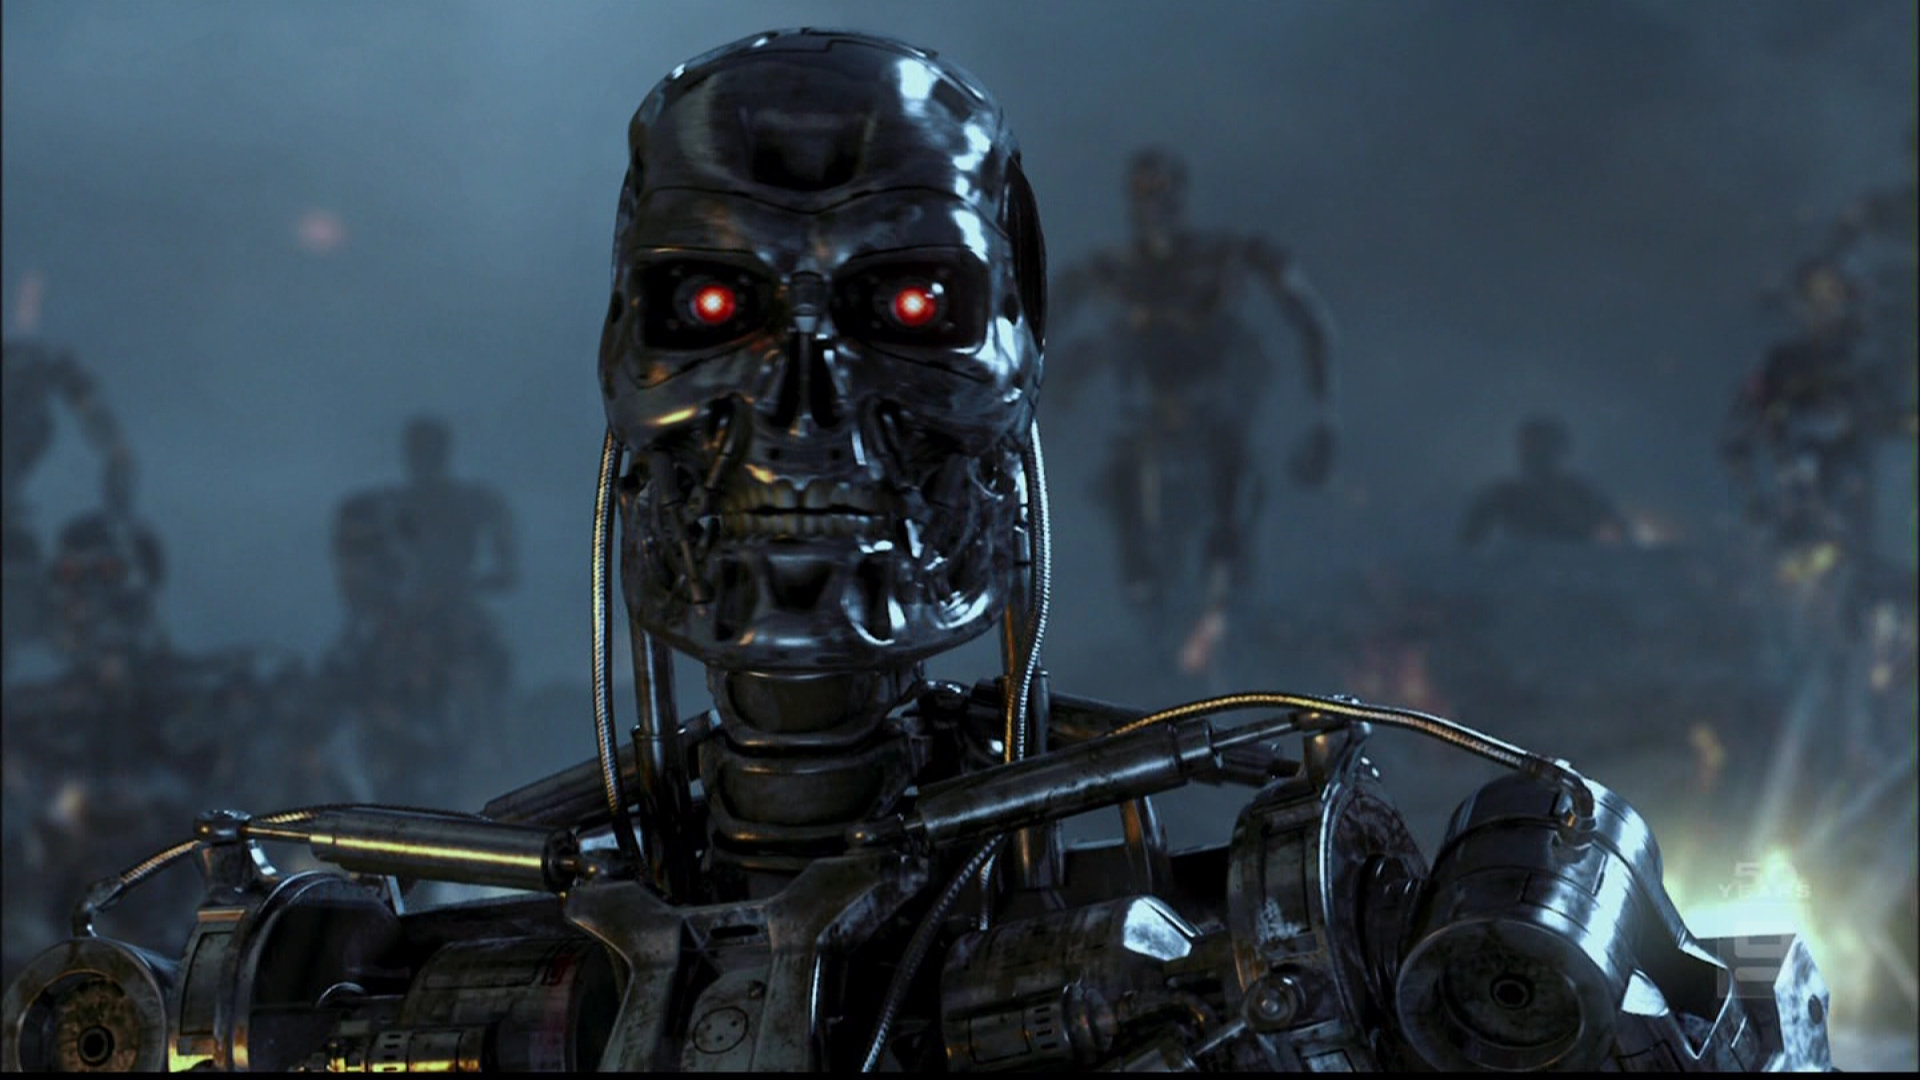 Awesome The Terminator Free Wallpaper Id66828 For 1080p Pc